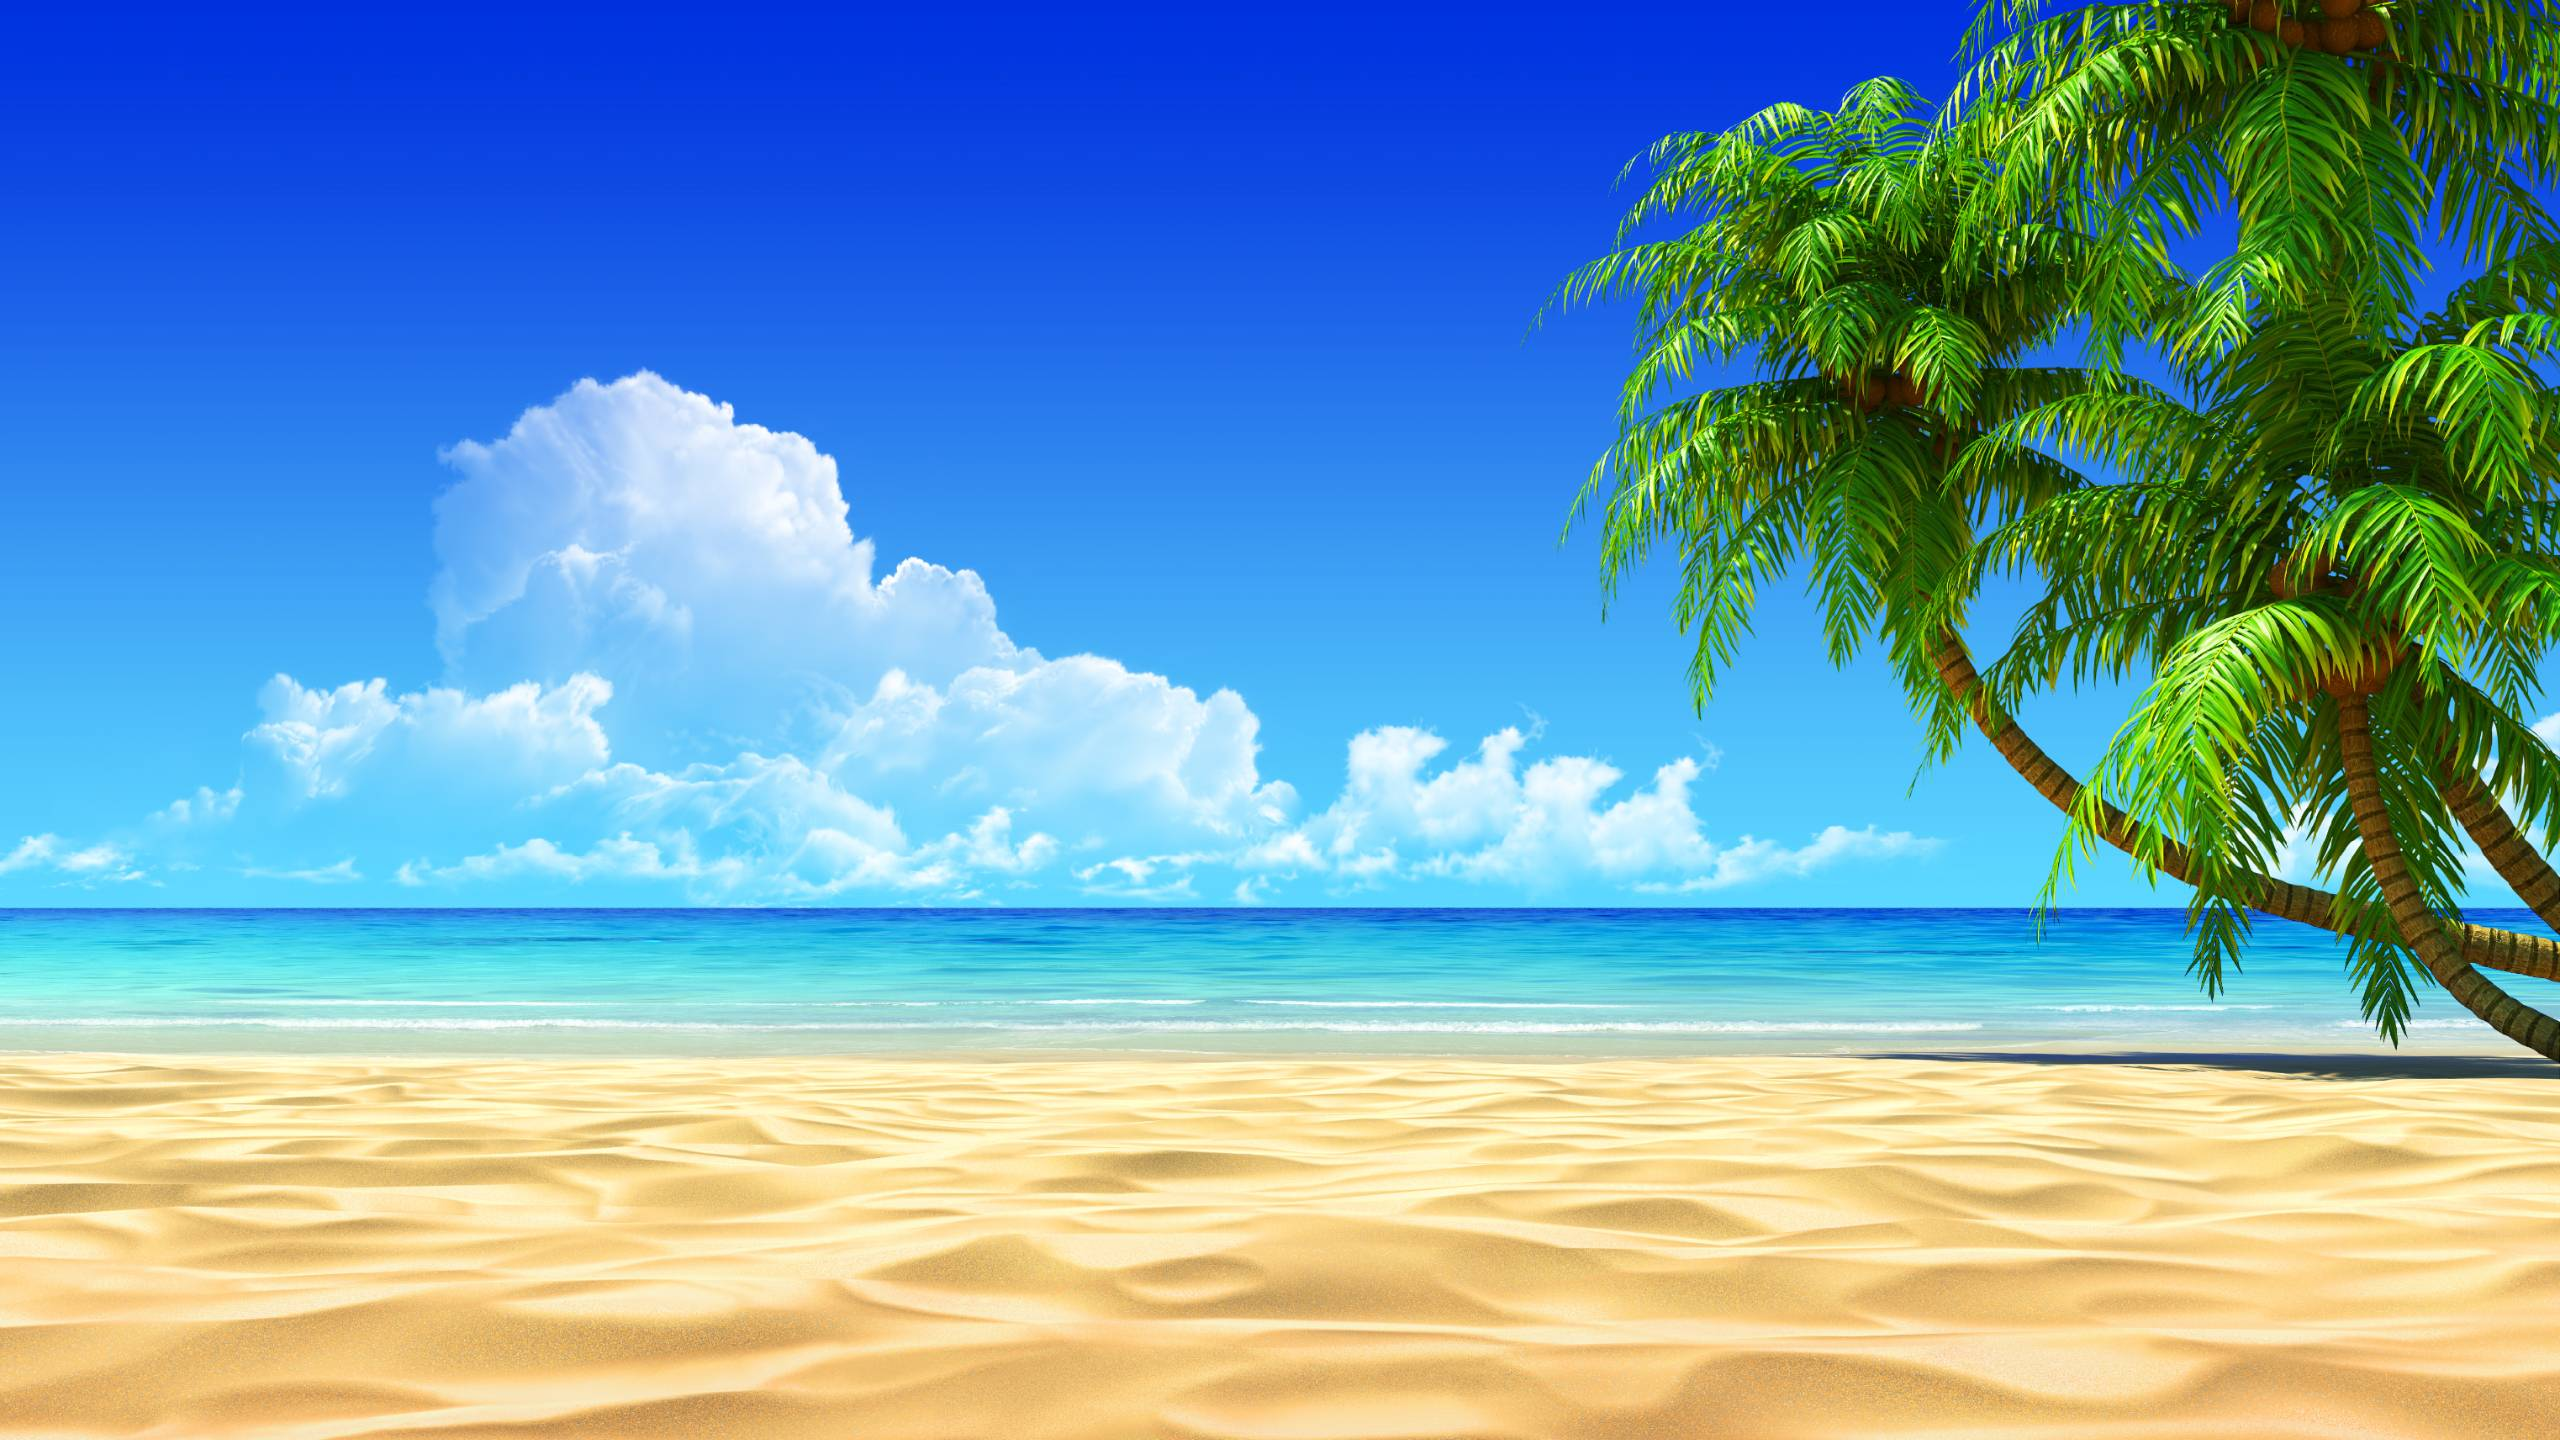 Tropic Wallpaper